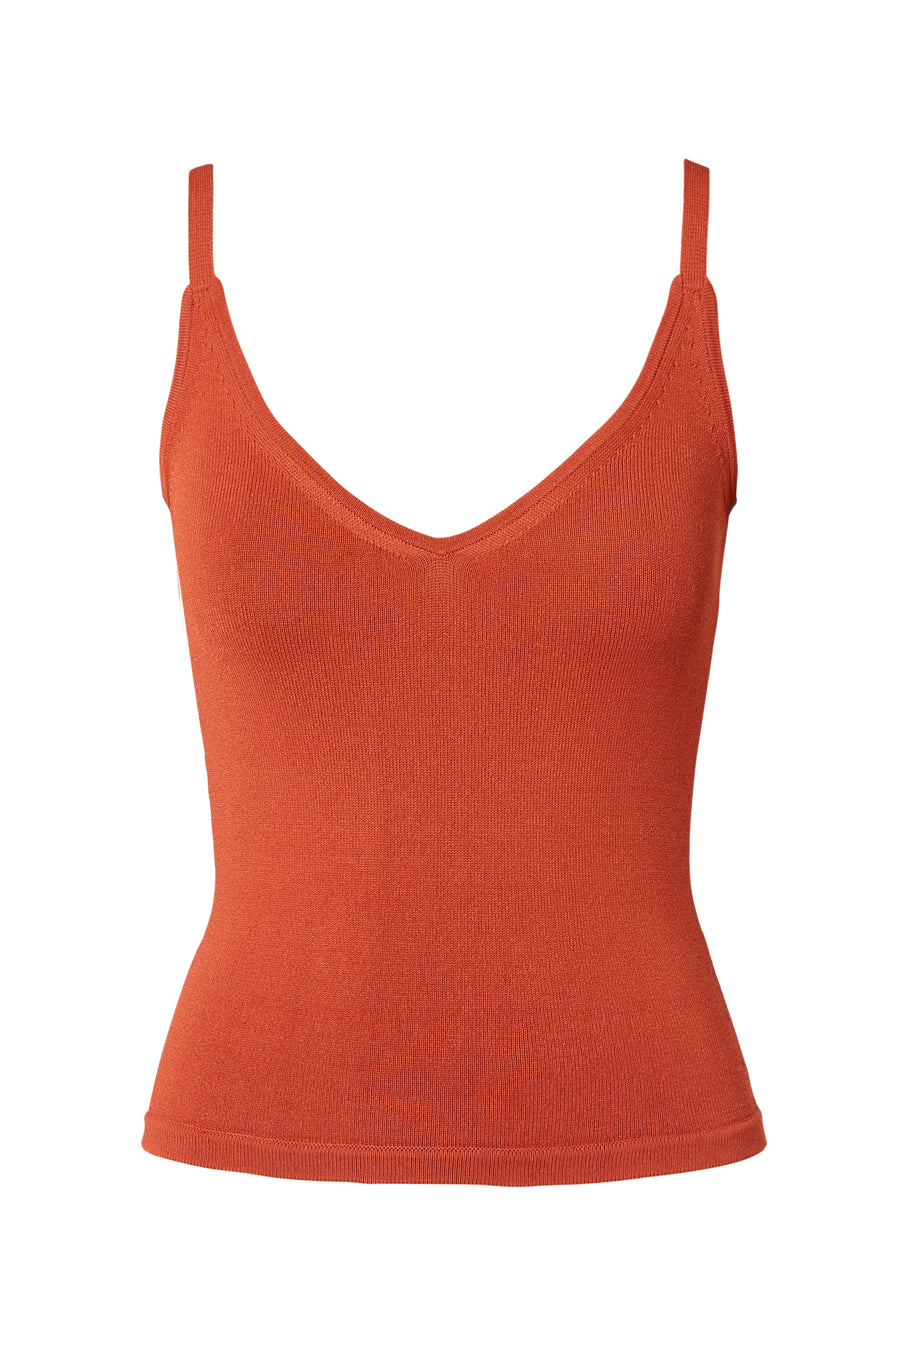 Crepe Knit Cropped Camisole, scoop v neckline, thin shoulder straps, intended to fit close to the body, Color Burnt